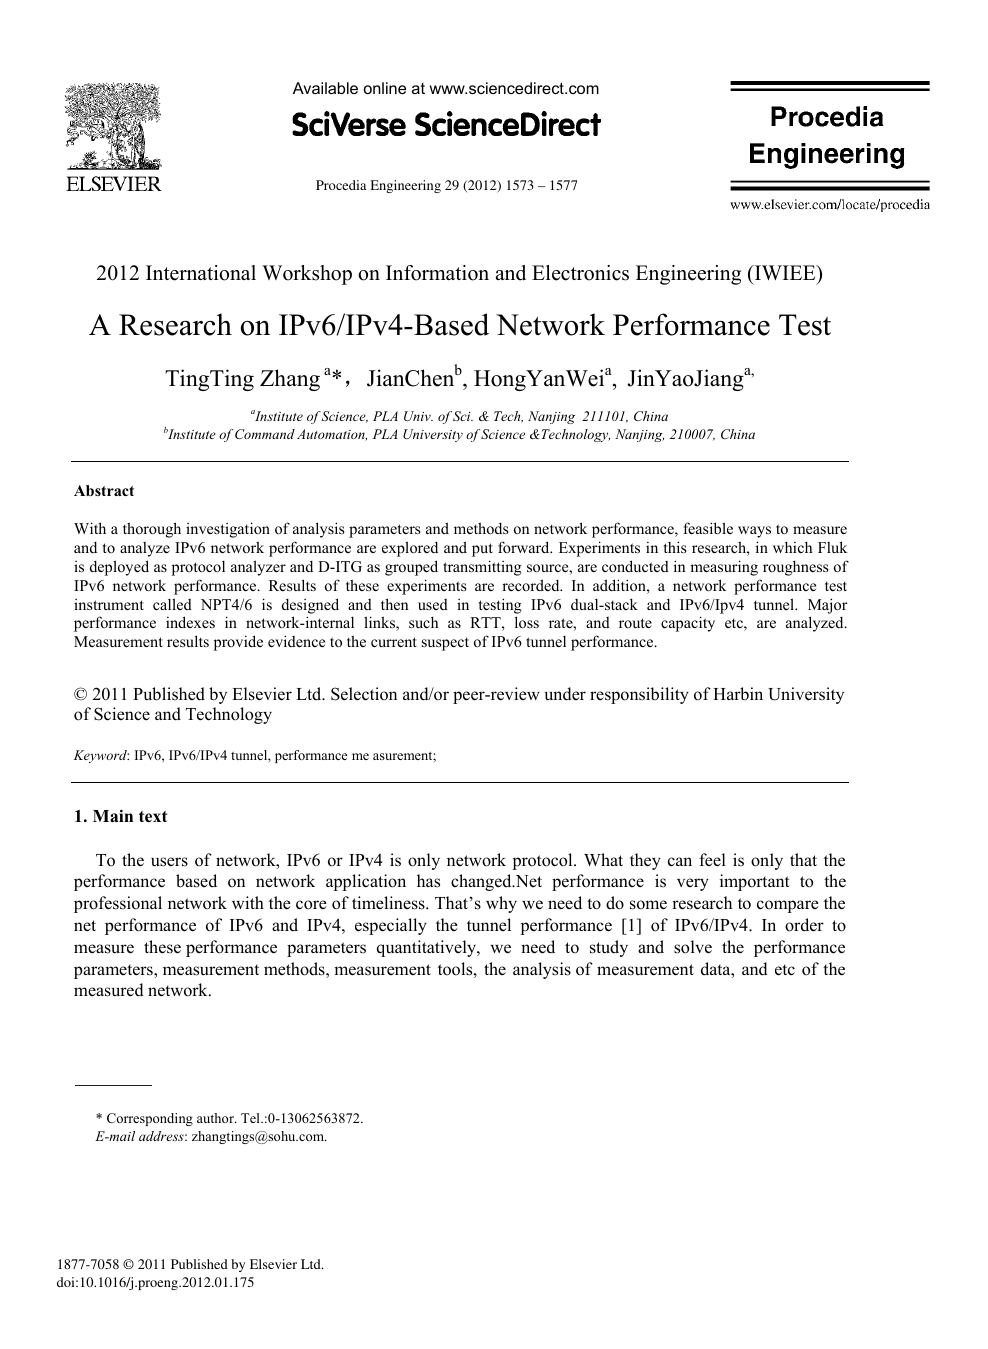 A Research on IPv6/IPv4-Based Network Performance Test